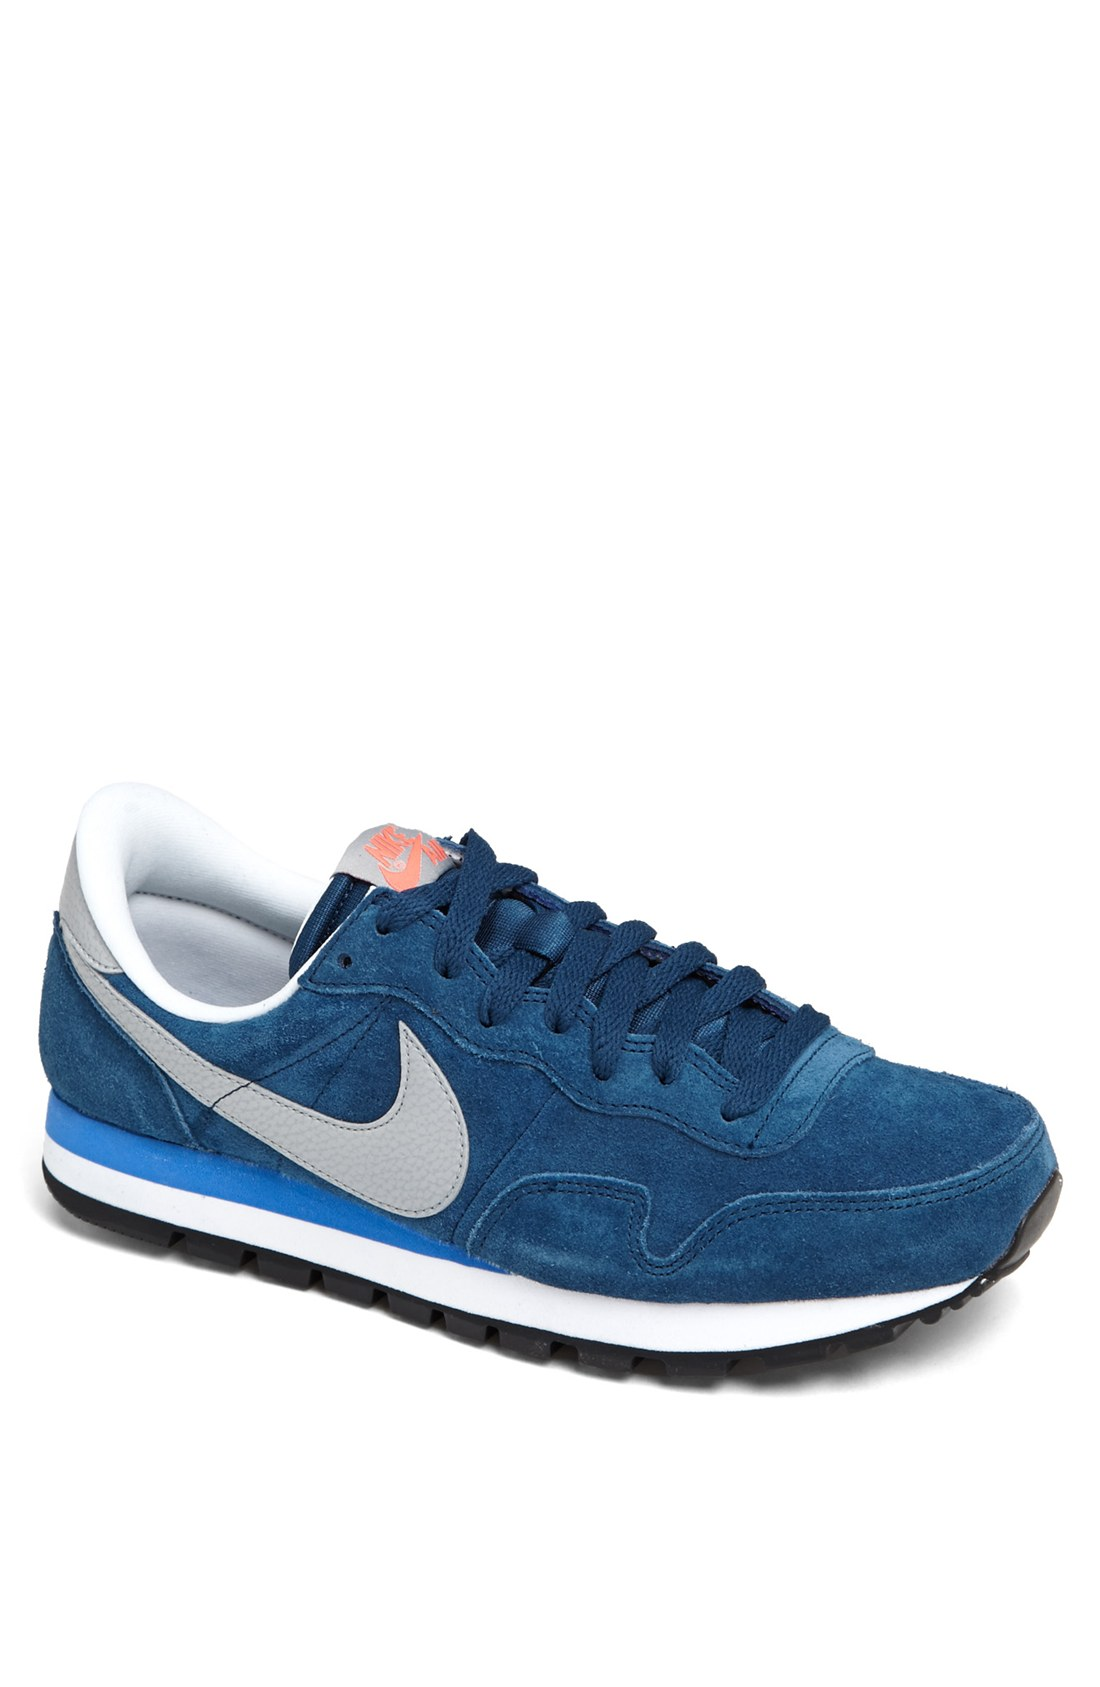 nike blue air pegasus 83 ltr sneaker for men lyst. Black Bedroom Furniture Sets. Home Design Ideas